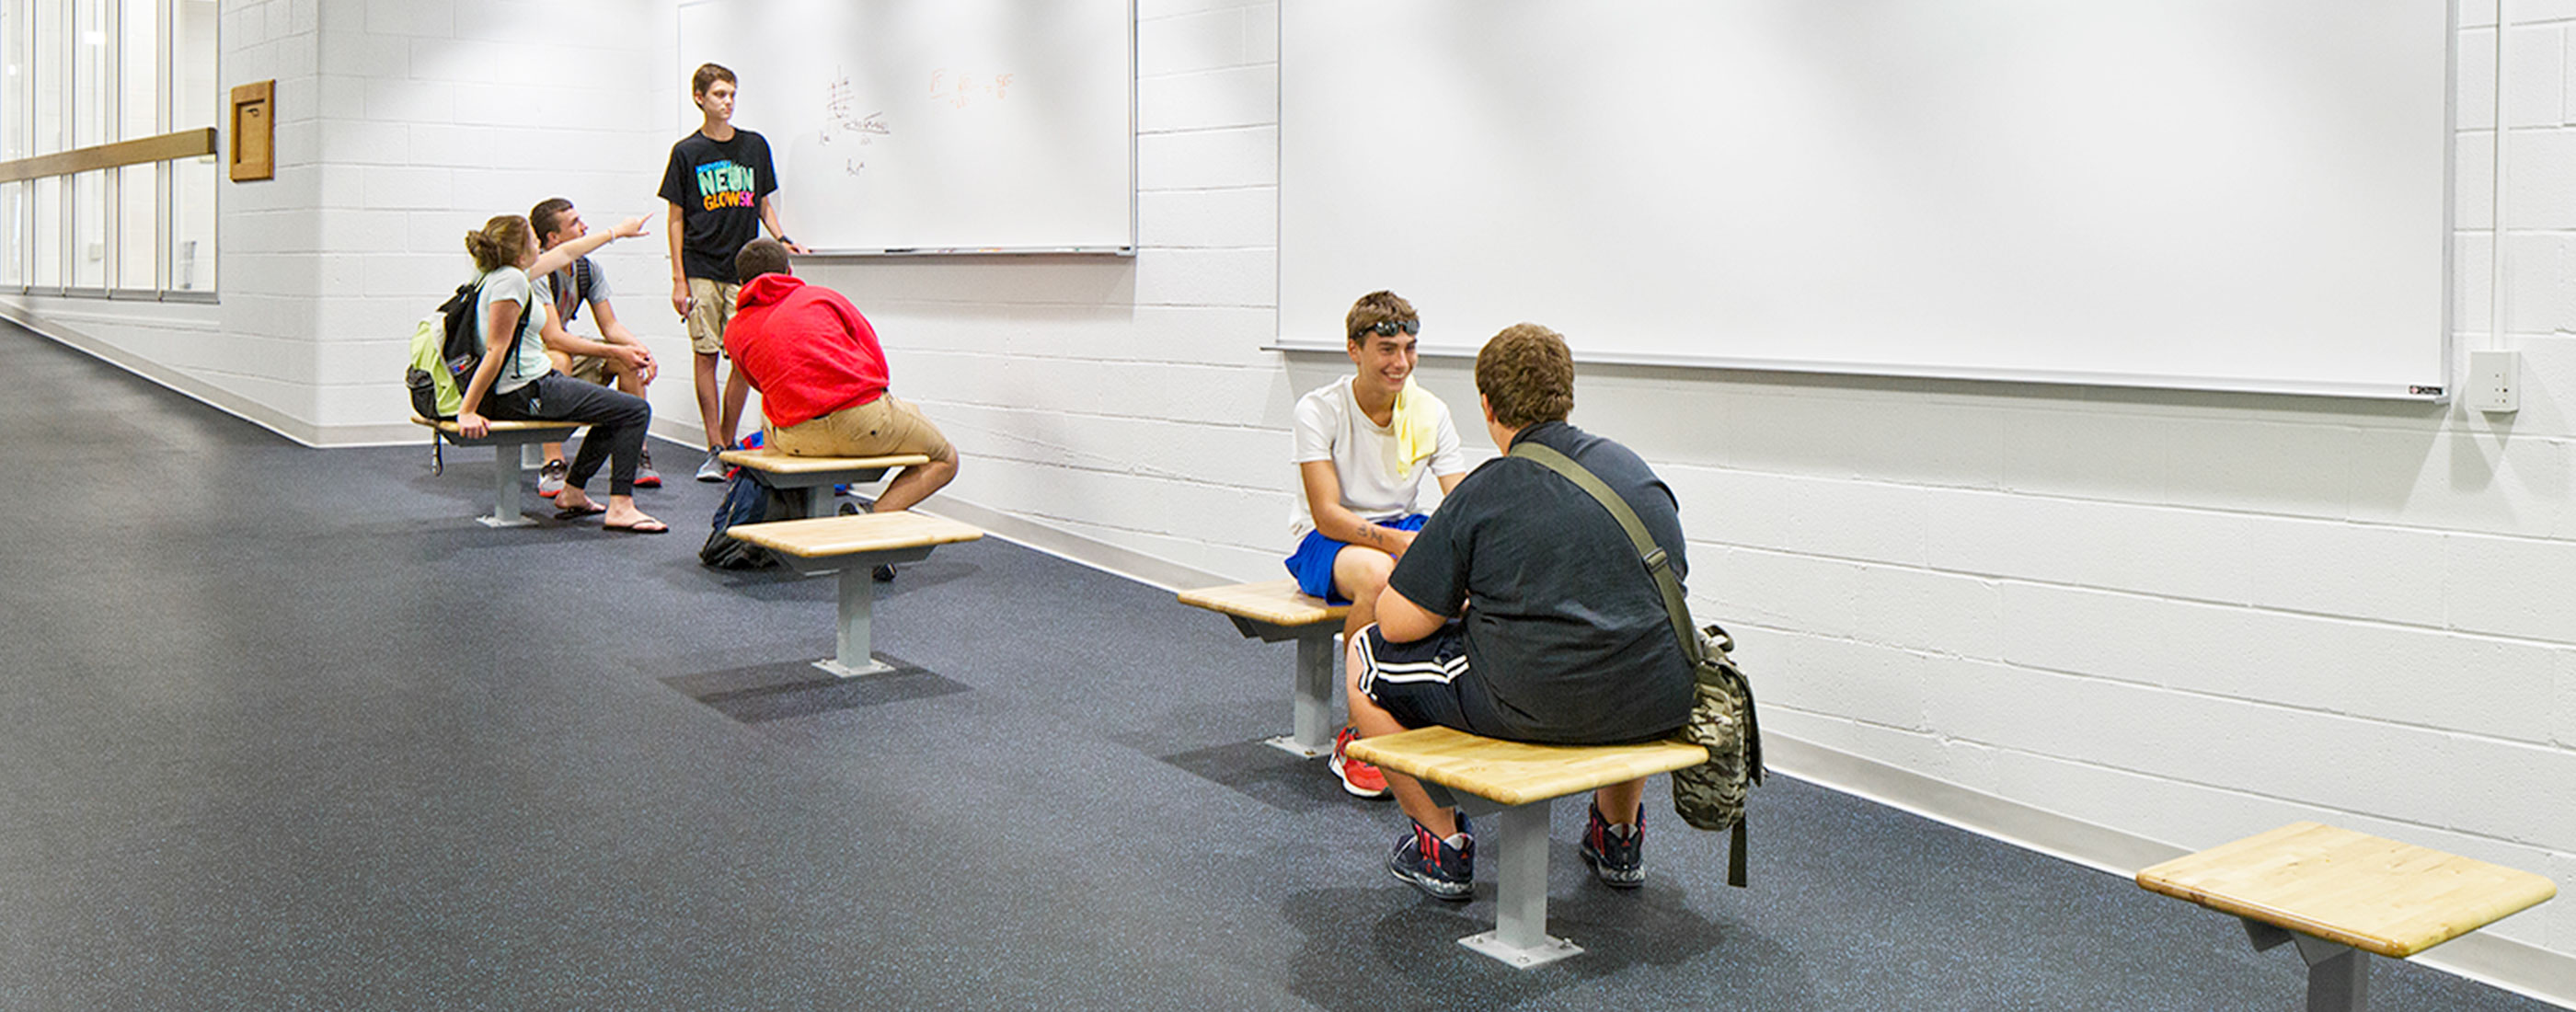 Students in Marysville's STEM High School, designed by OHM Advisors, collaborate on learning projects in shared spaces.